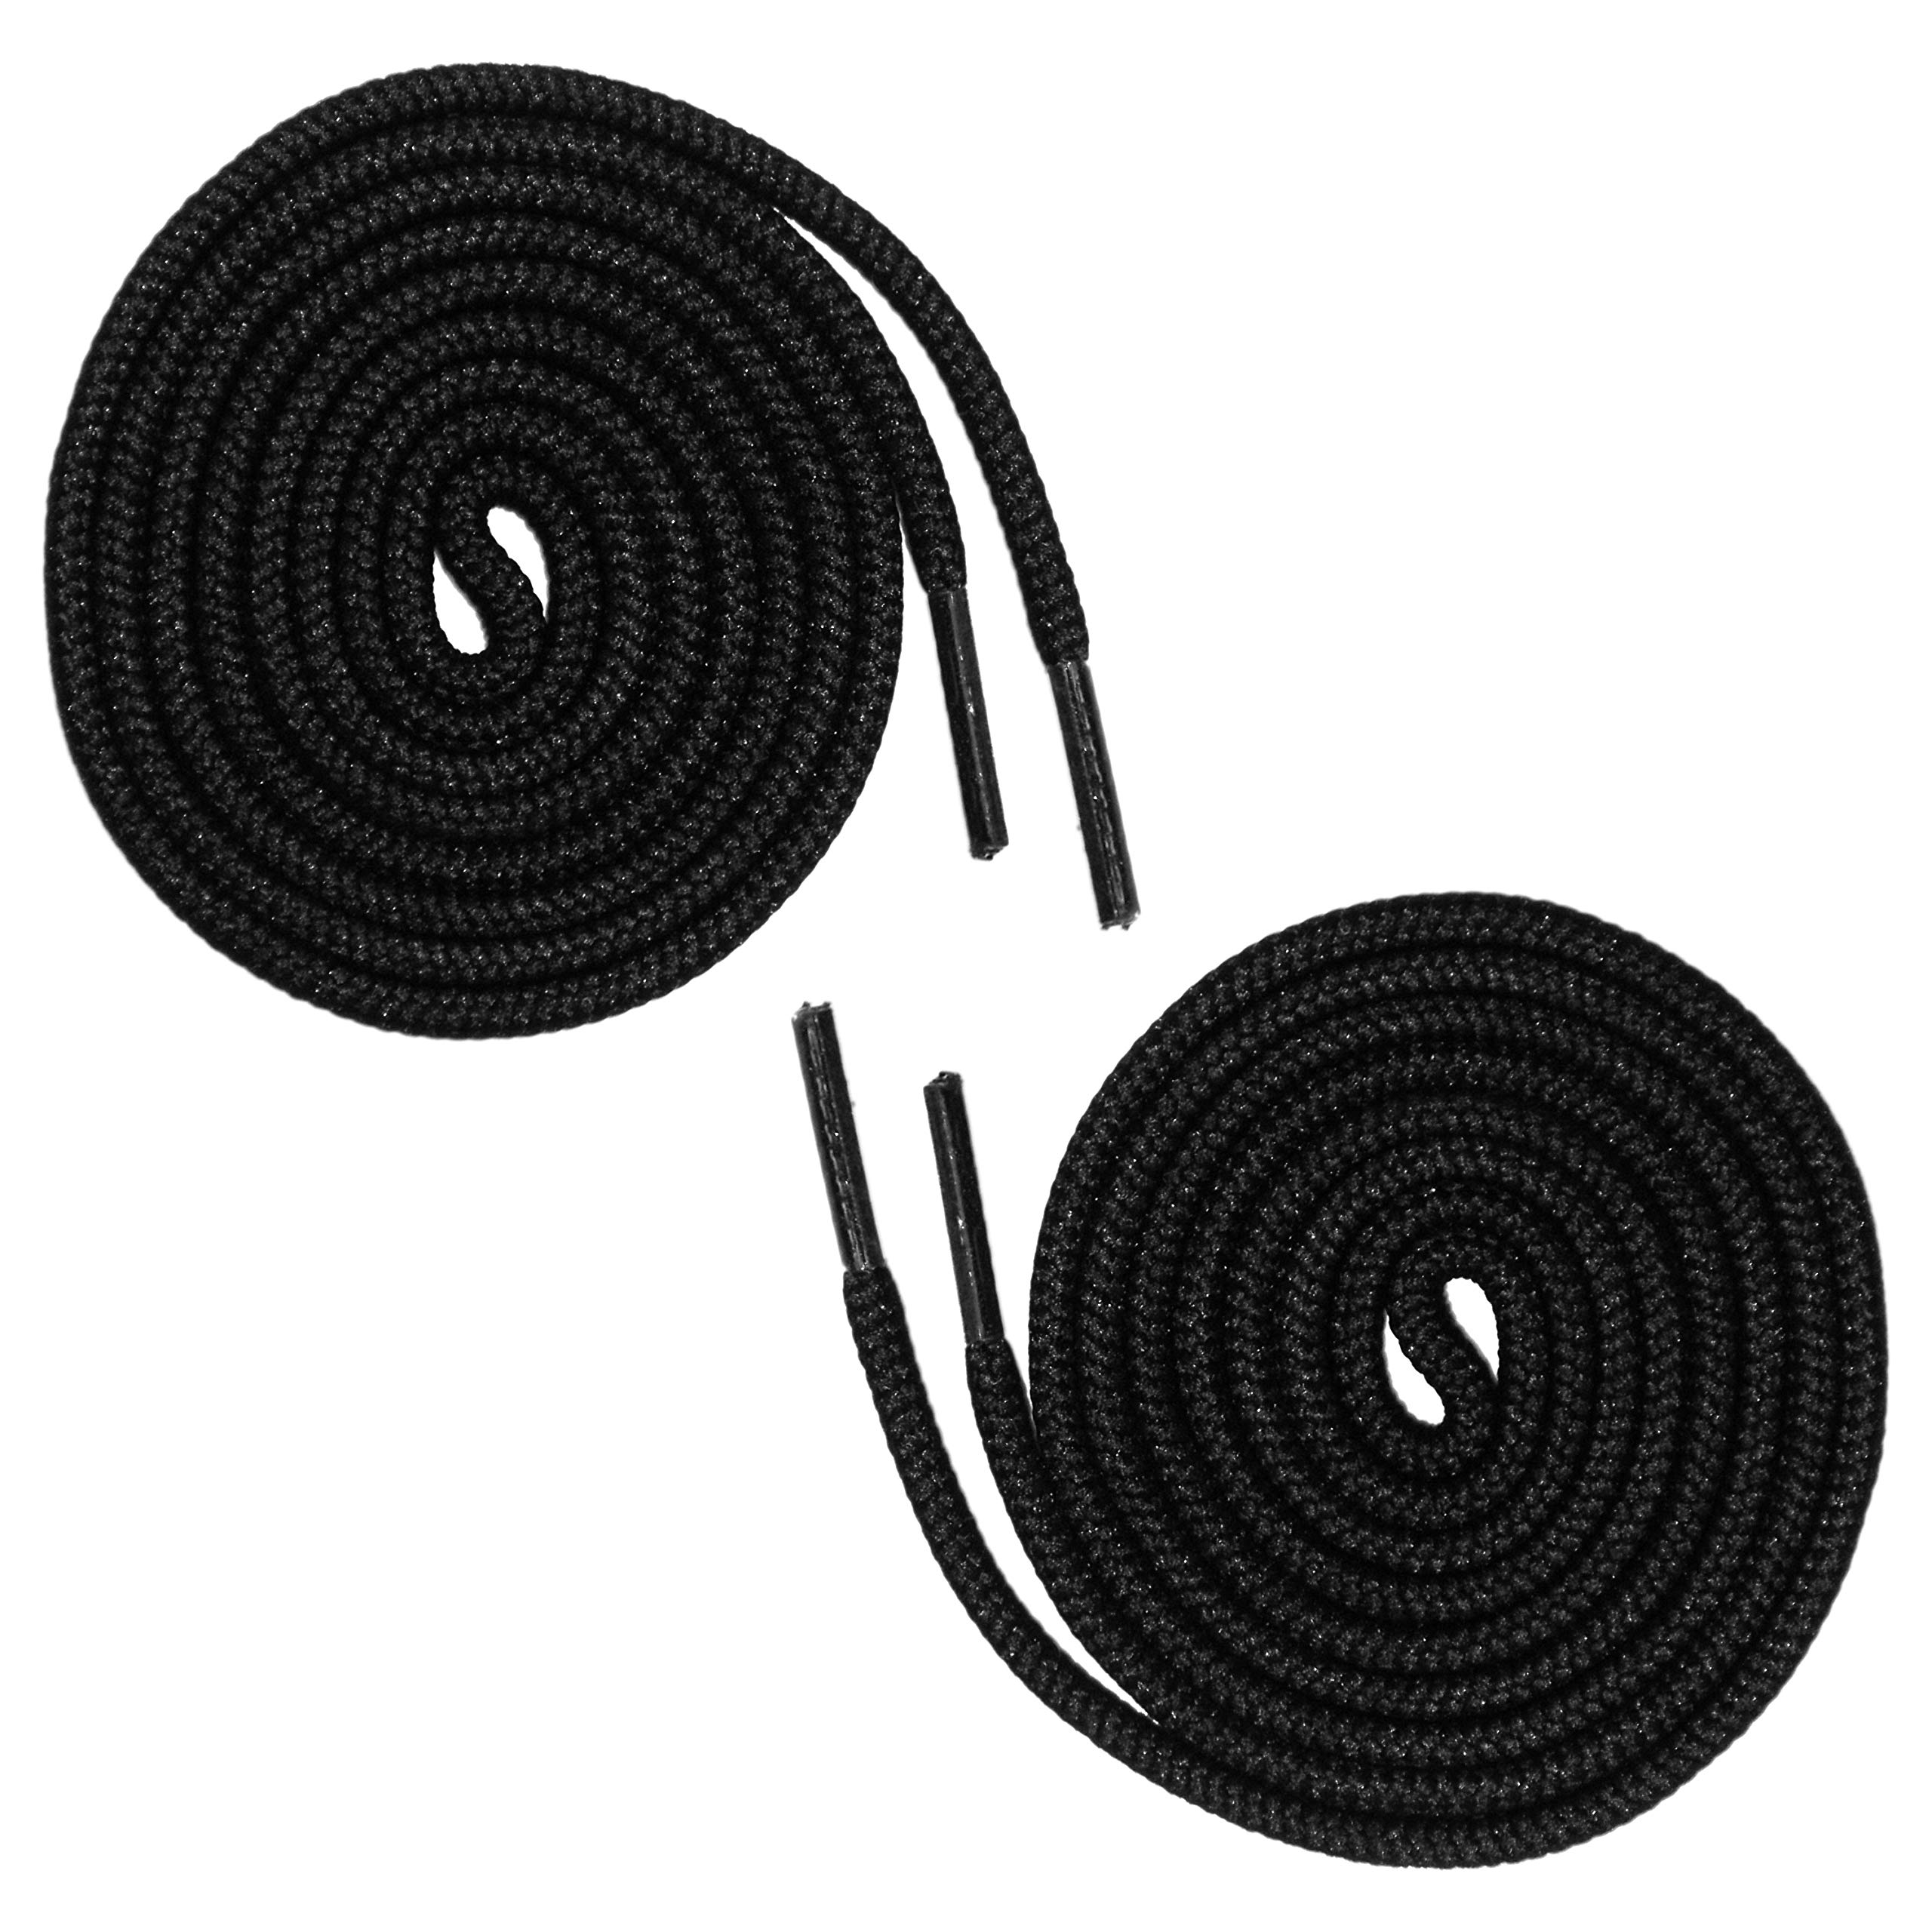 Round Shoelaces Wholesale - 144 (12 Dozen) for Sneakers, Boots and Shoes - Buy Wholesale Shoestrings in Bulk by Shoe String King (Image #1)